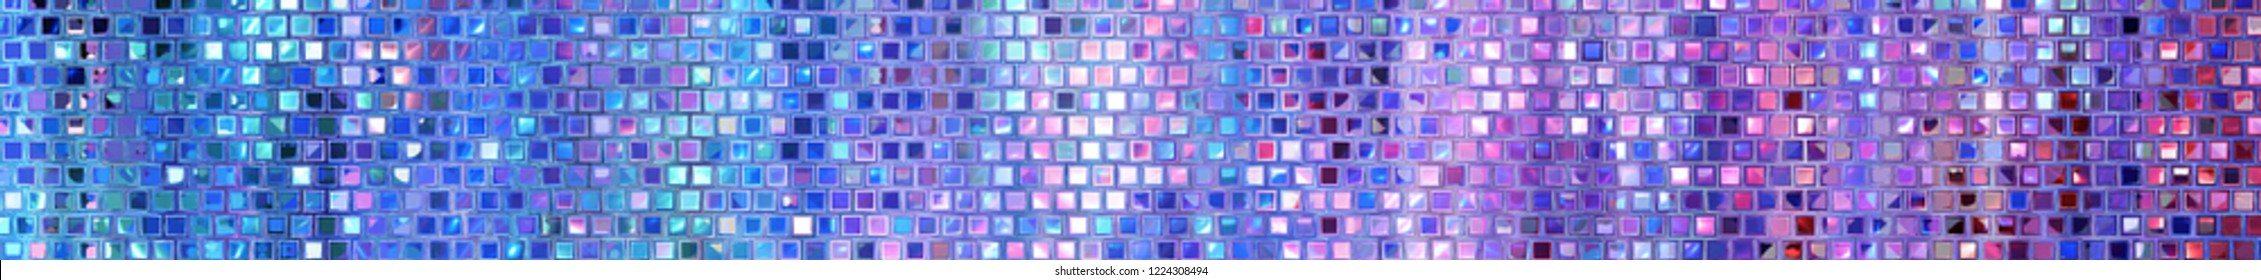 Panoramic violet background texture with mosaic. Geometric mosaic design. Abstract color trendy background. Mosaic texture with geometric shapes.